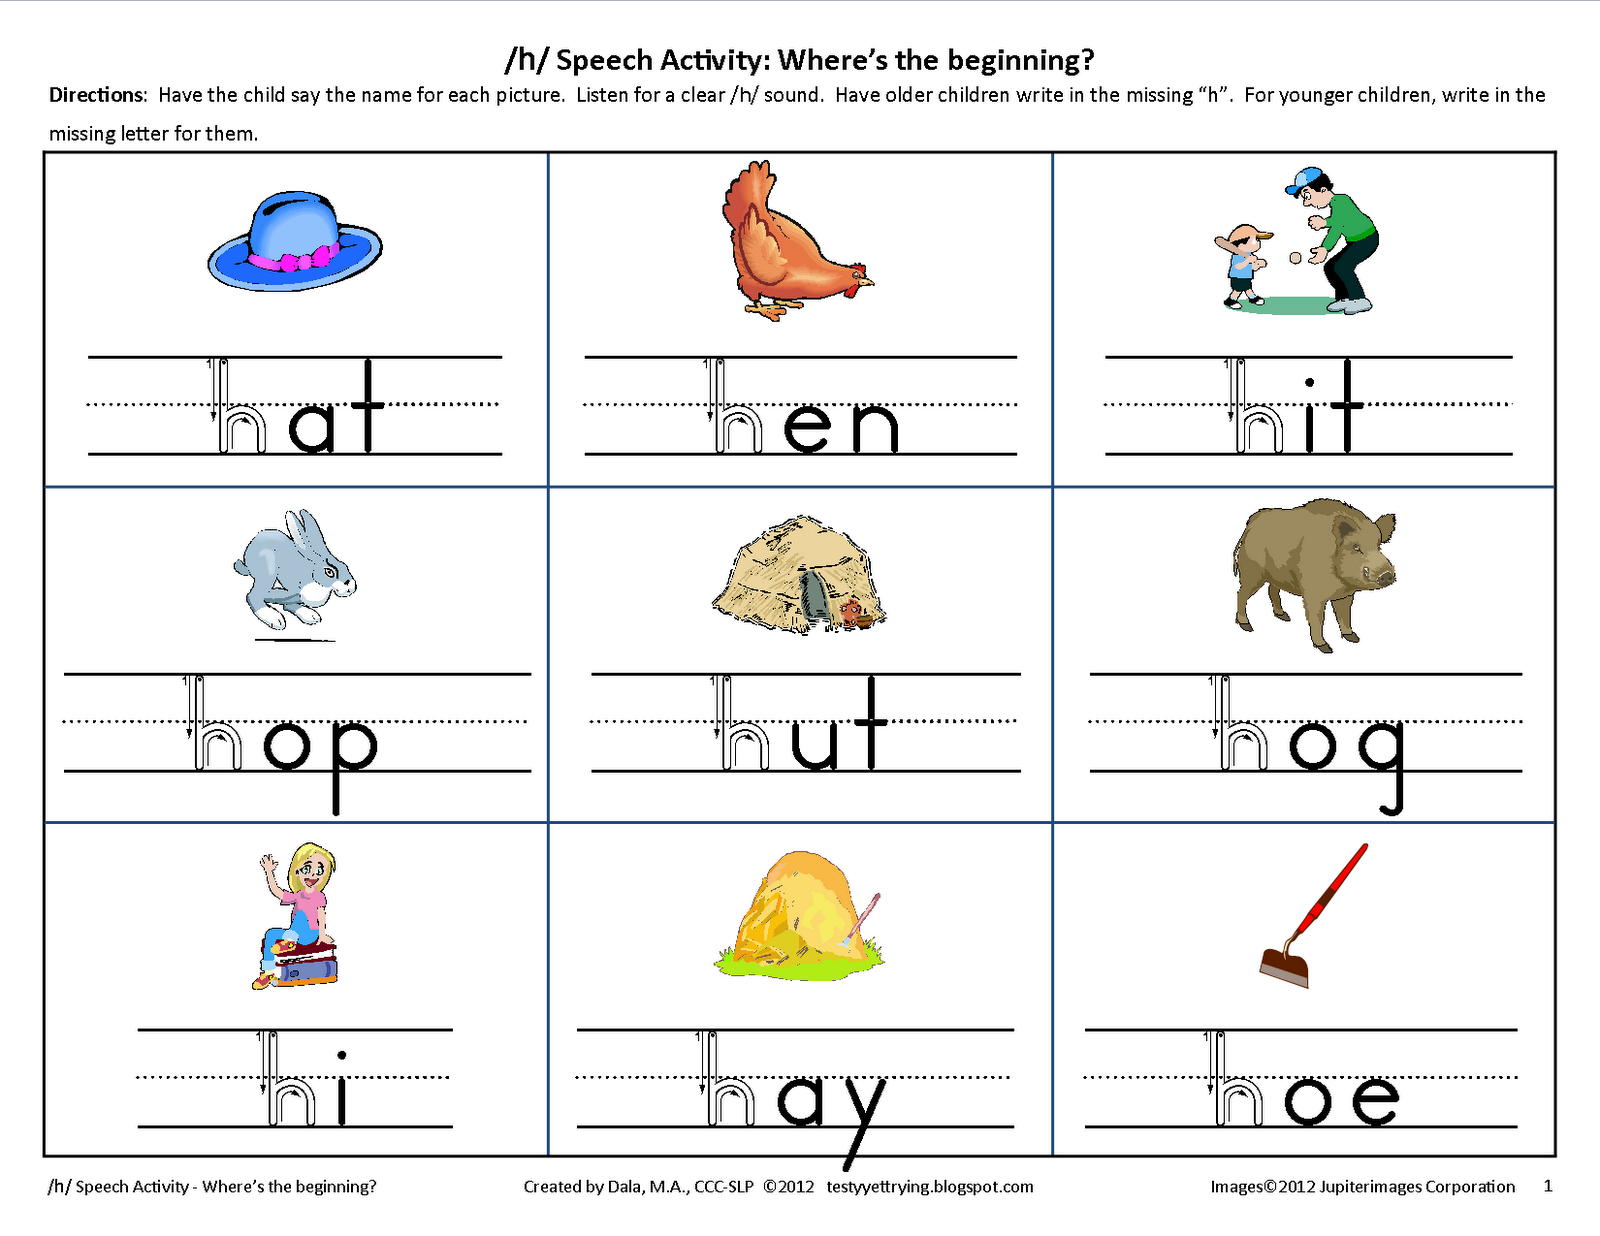 Weirdmailus  Marvellous Testy Yet Trying Initial H Speech Worksheet With Licious Make Classroom Teachers Happy Reinforce Phonics And Handwriting And Practice Speech All At The Same Time With Enchanting Grade  Social Science Worksheets Also Grade  Math Worksheet In Addition Number Families Worksheet And Prefix Root Word Suffix Worksheet As Well As Free Printable Alphabet Letters Worksheets Additionally Grade Five Math Worksheets From Testyyettryingblogspotcom With Weirdmailus  Licious Testy Yet Trying Initial H Speech Worksheet With Enchanting Make Classroom Teachers Happy Reinforce Phonics And Handwriting And Practice Speech All At The Same Time And Marvellous Grade  Social Science Worksheets Also Grade  Math Worksheet In Addition Number Families Worksheet From Testyyettryingblogspotcom